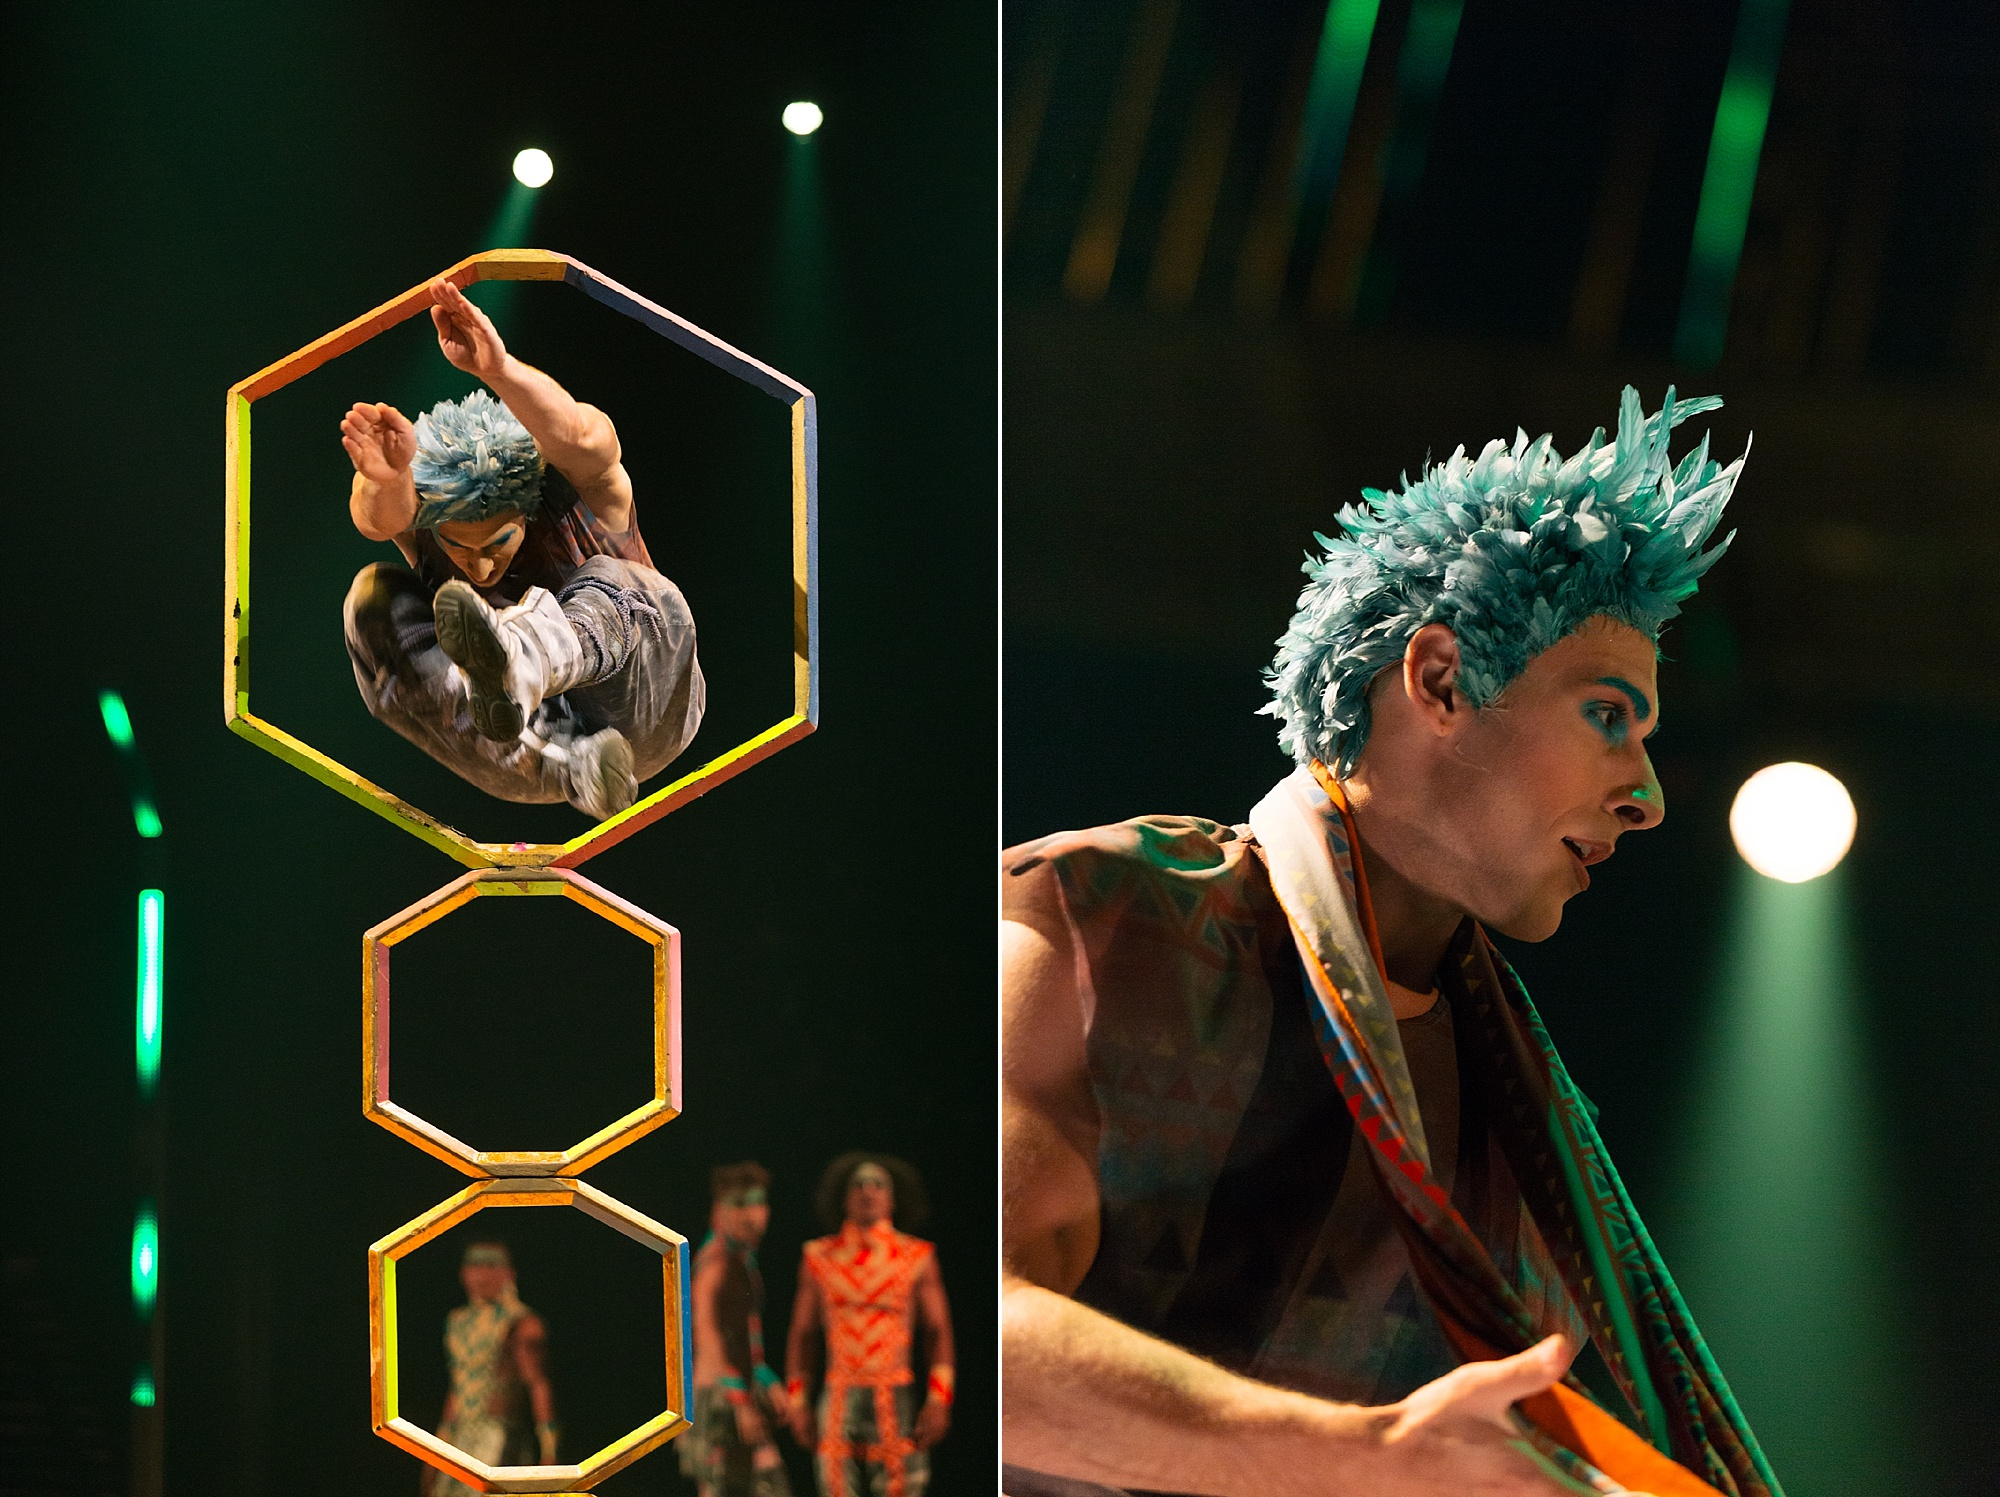 Joe_Mac_Creative_cirque_du_soleil_volta_Greater Philadelphia_Expo_Center_Oaks_PA_Visit_Valley _Forge_0026.jpg